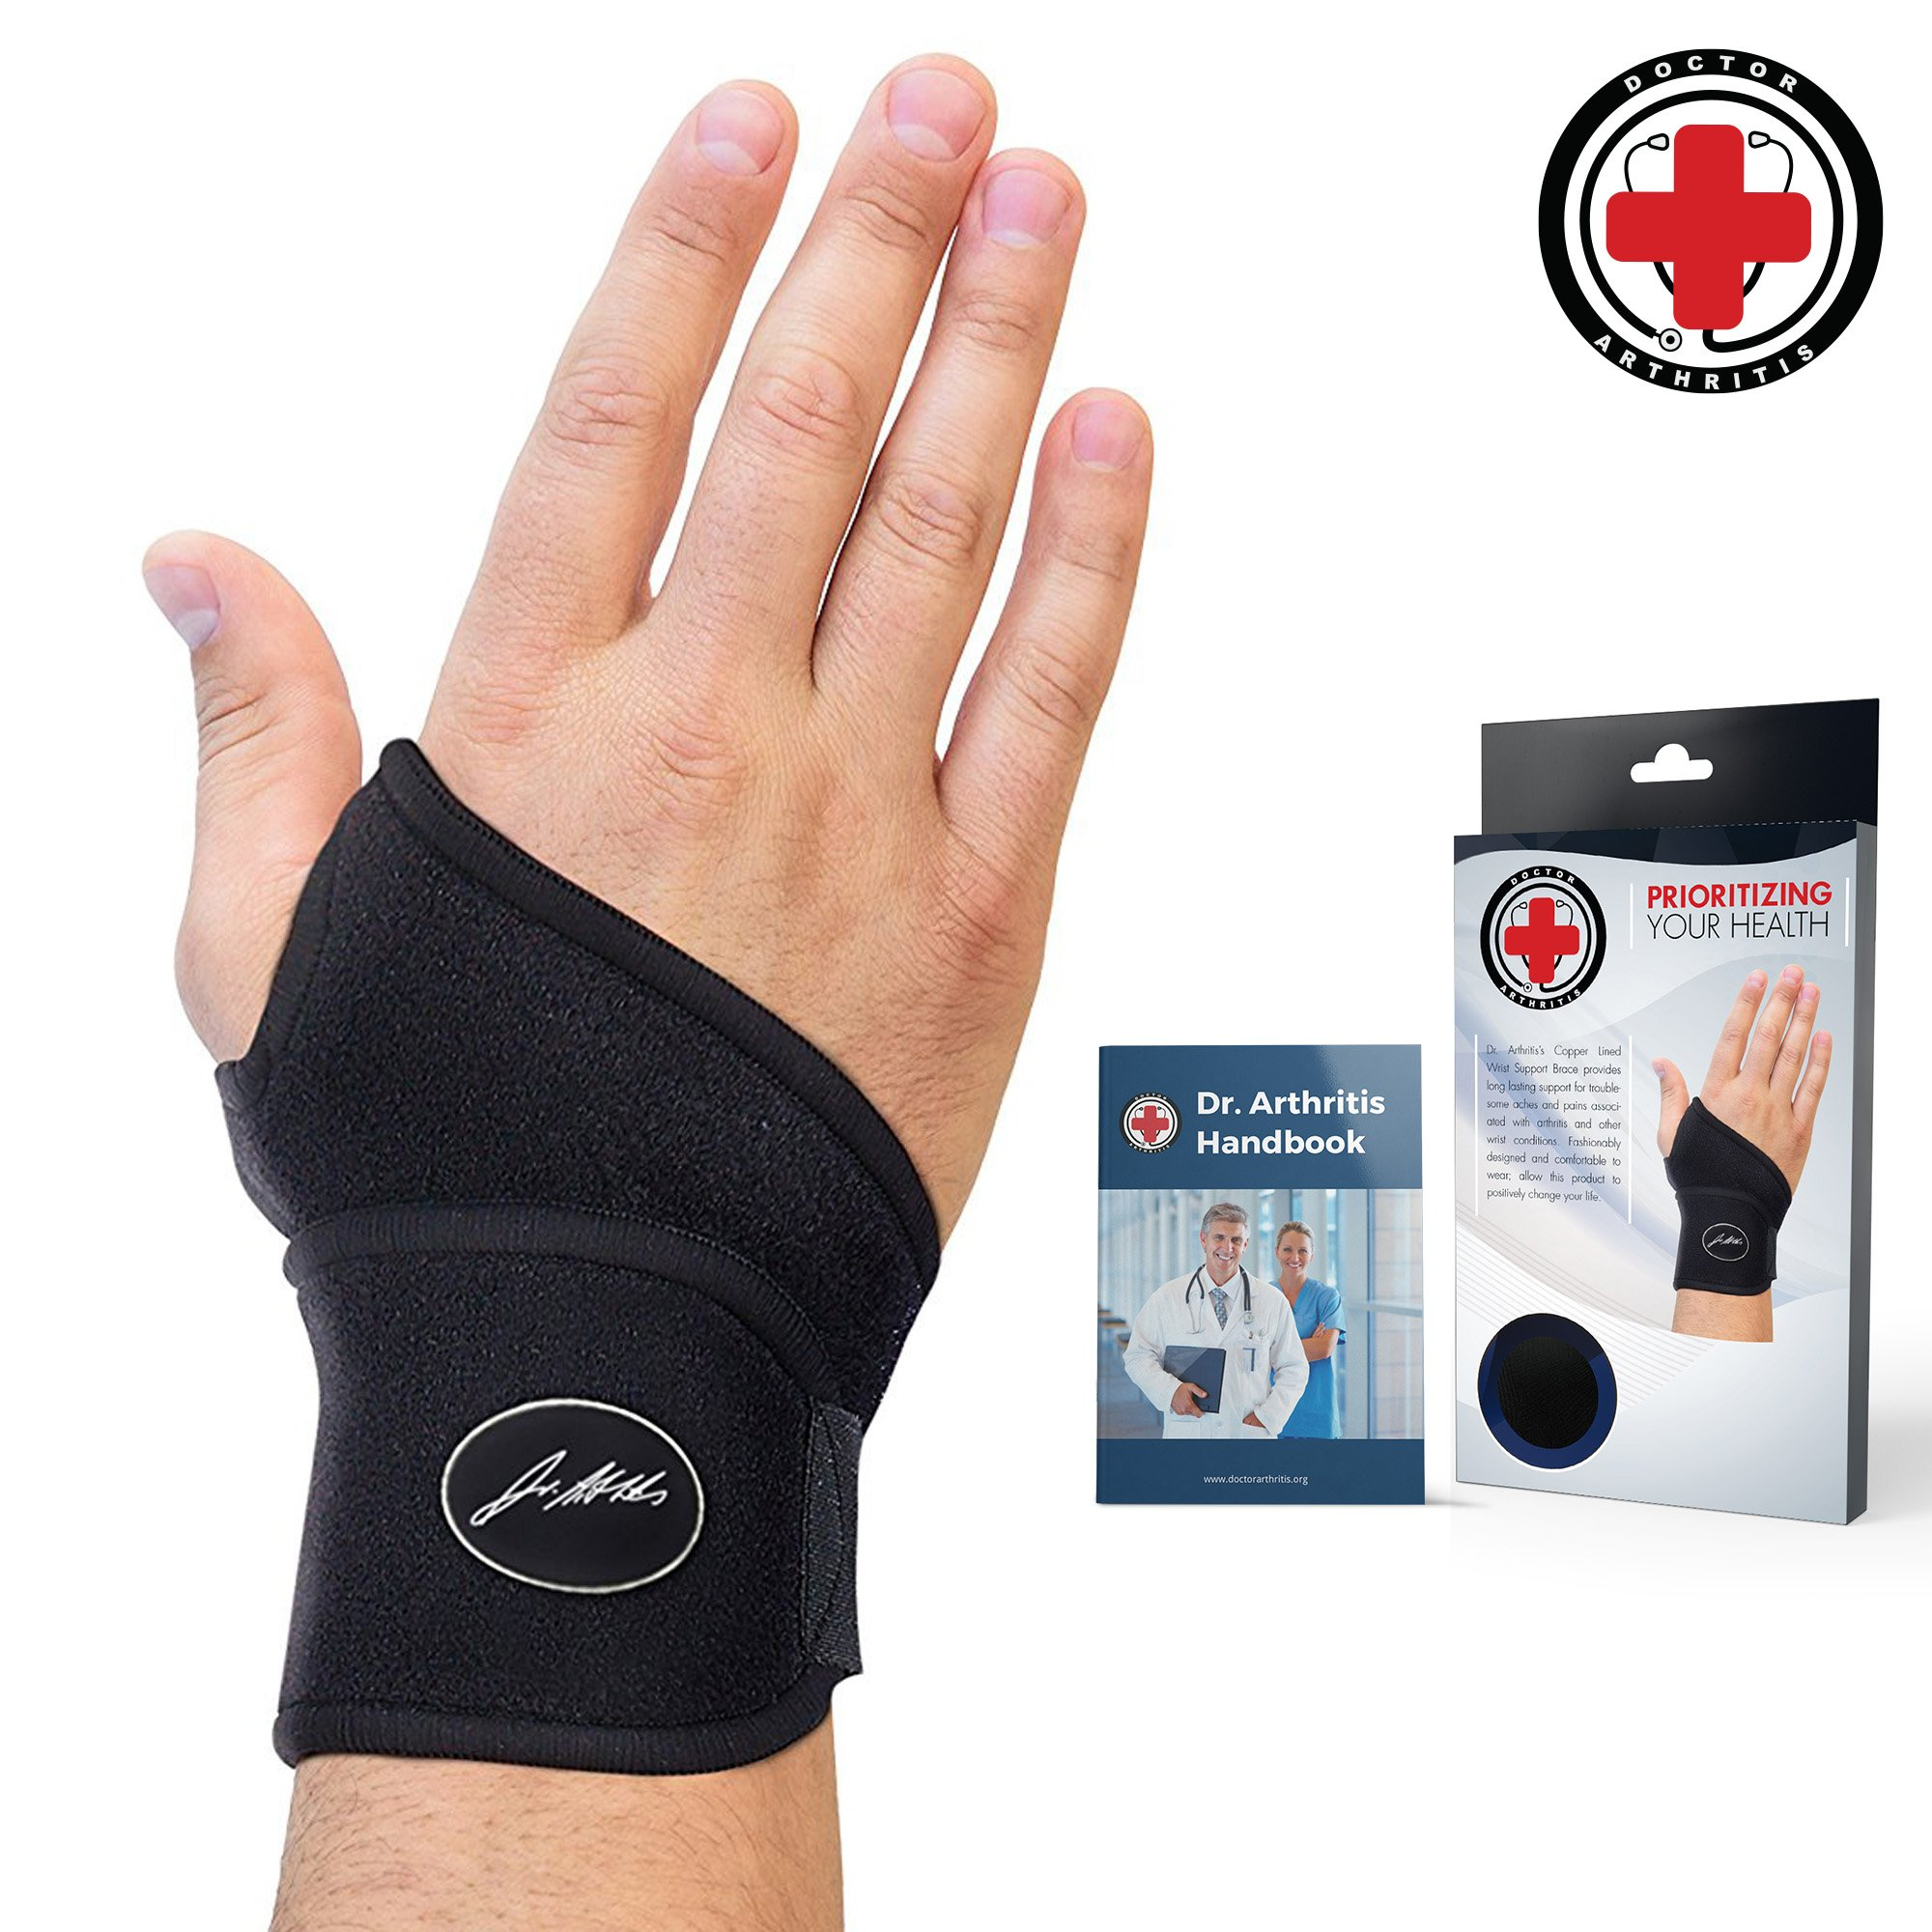 Doctor Developed Premium Copper Lined Wrist Support/Wrist Strap/Wrist Brace/Hand Support [Single]& Doctor Written Handbook- Suitable for Both Right and Left Hands by Dr. Arthritis